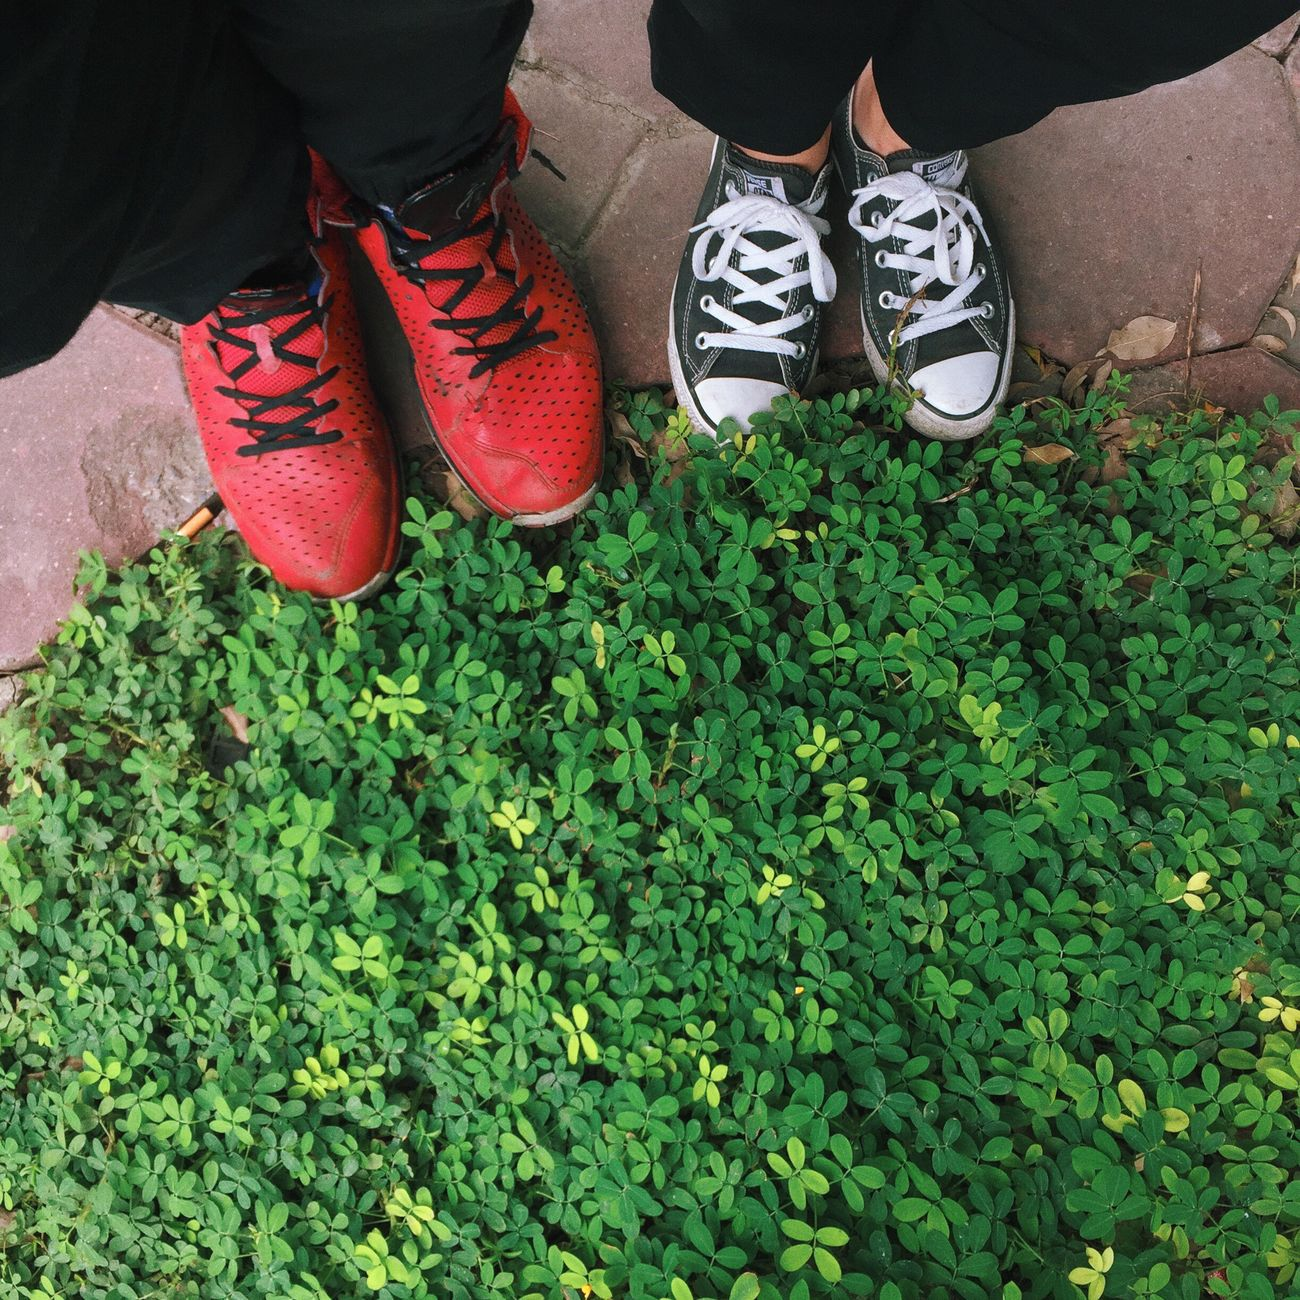 us Us Date Shoes Love MyLove❤ Him Green Standing Human Foot Day Outdoors